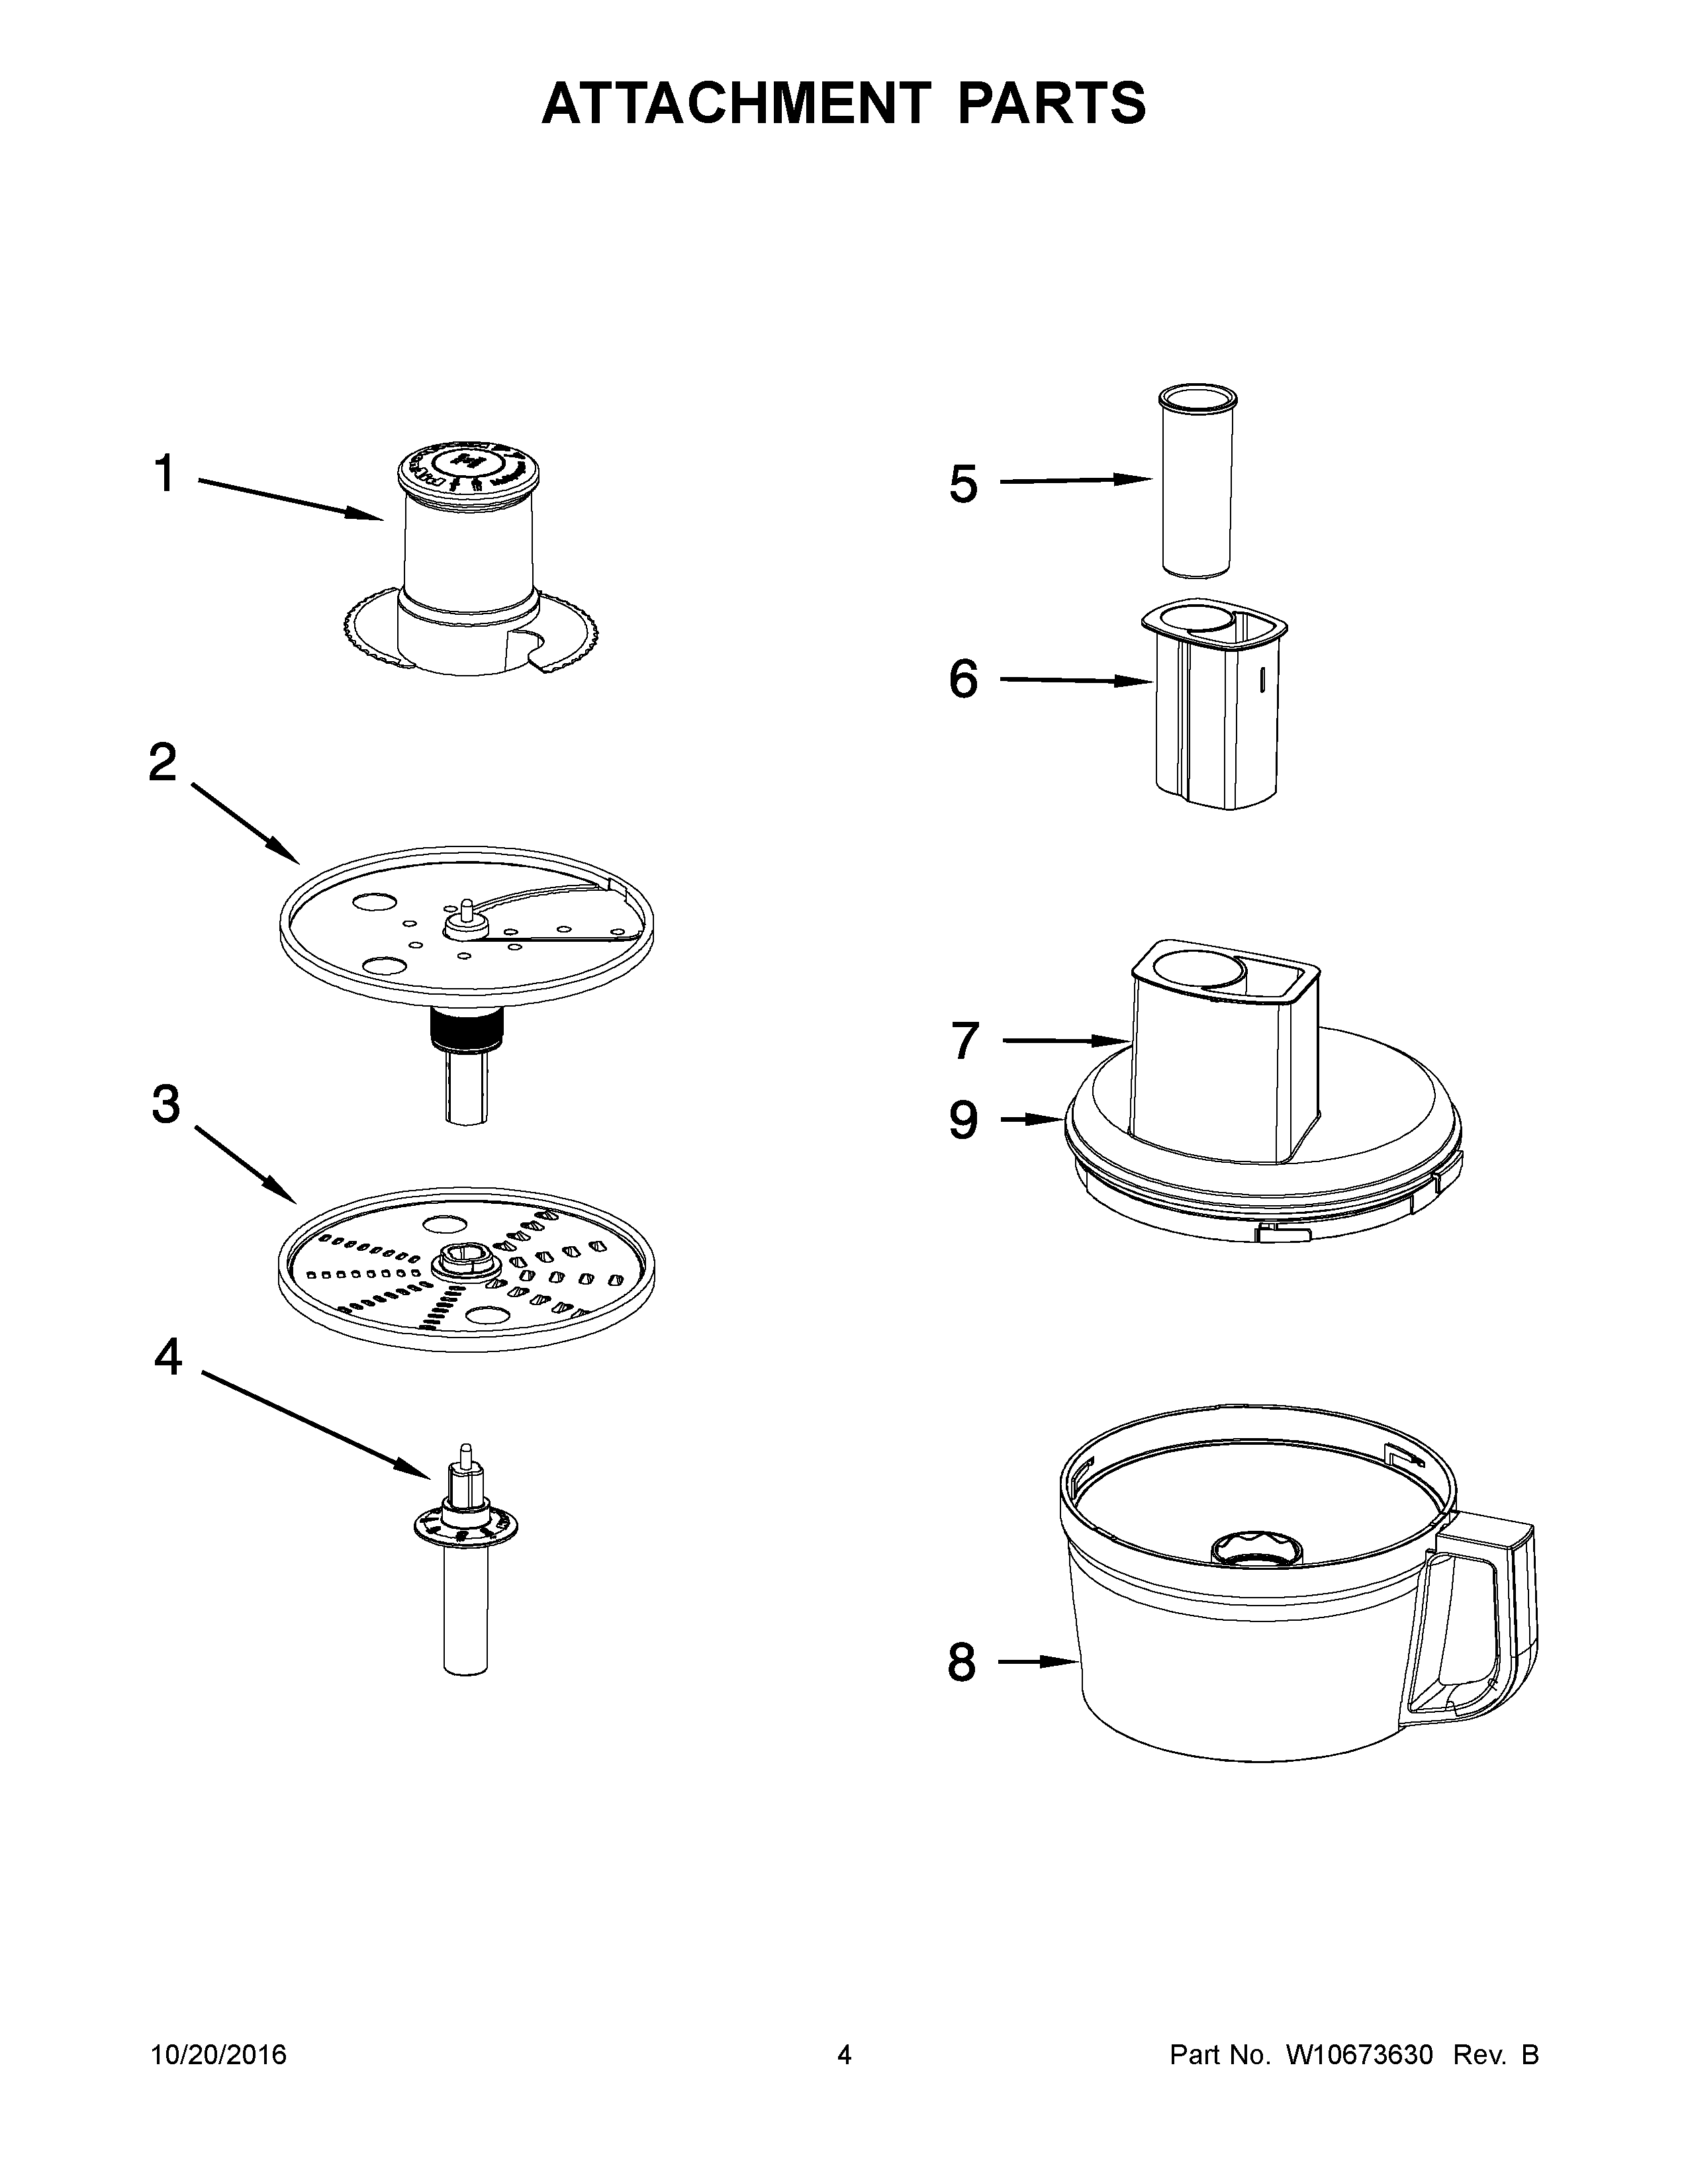 KitchenAid KFP0730QOB0 attachment parts diagram